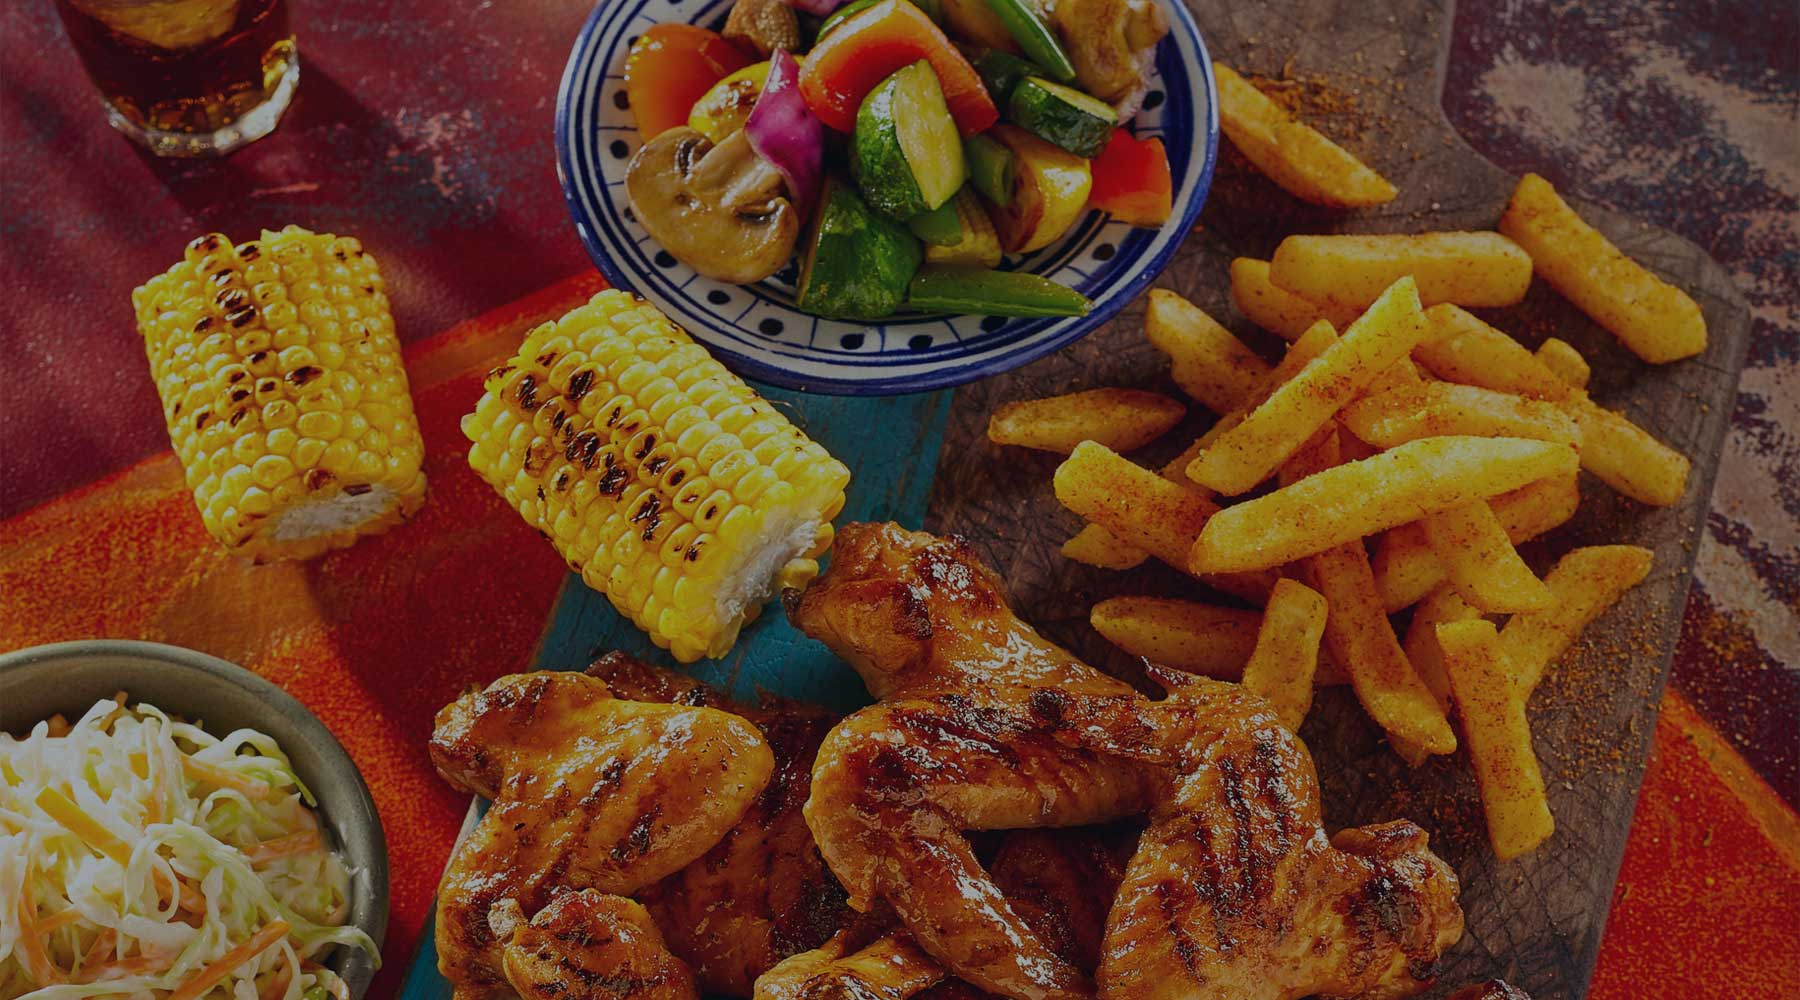 Eating at Nando's